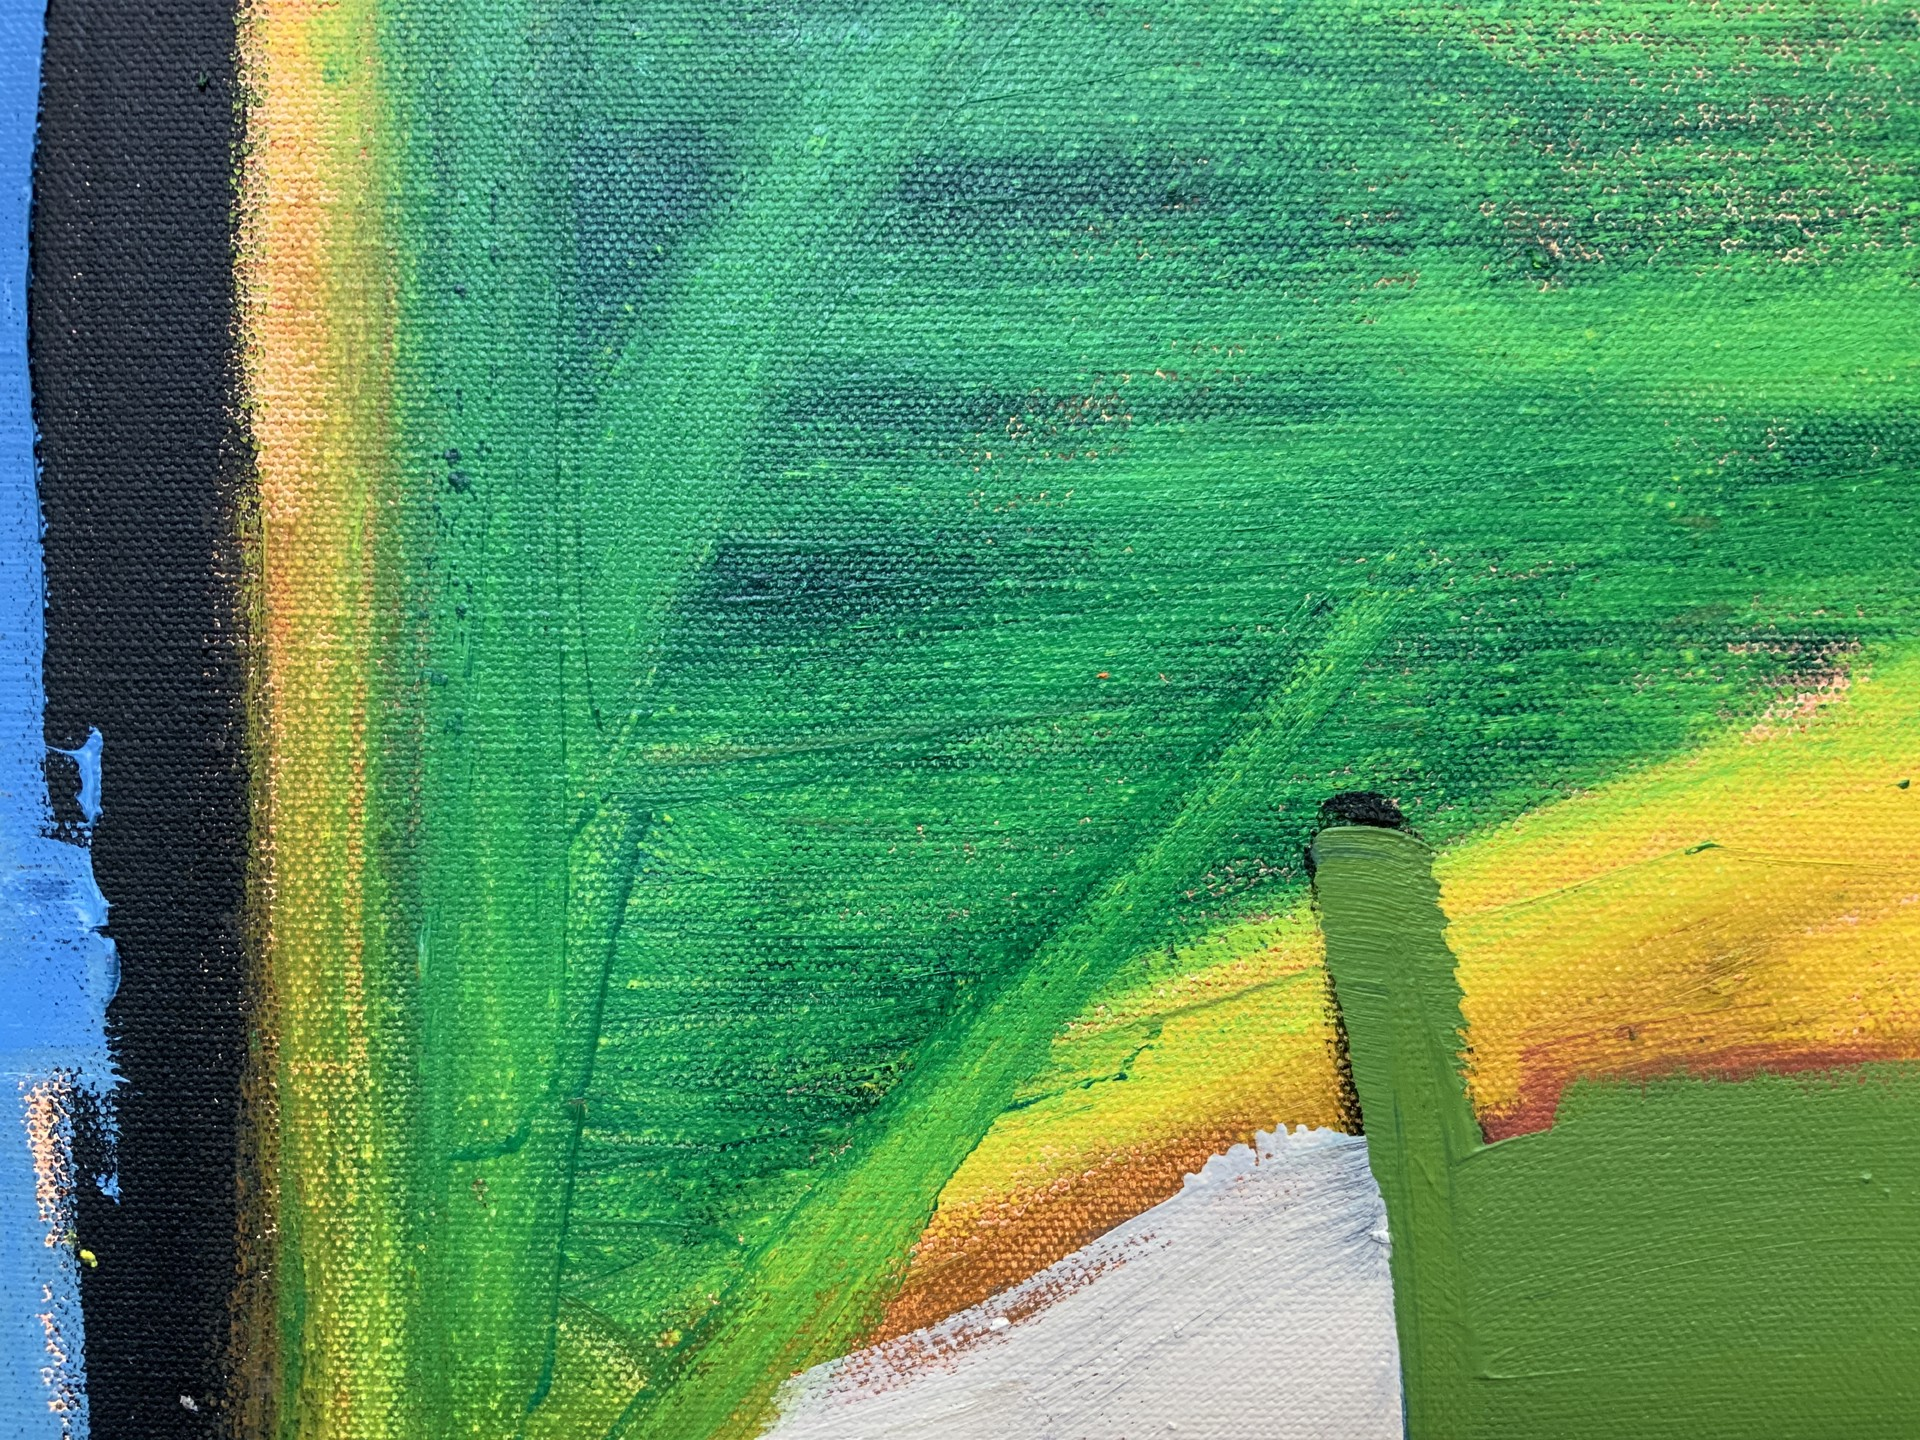 Abstract Landscape from the Air II by Steven Page Prewitt